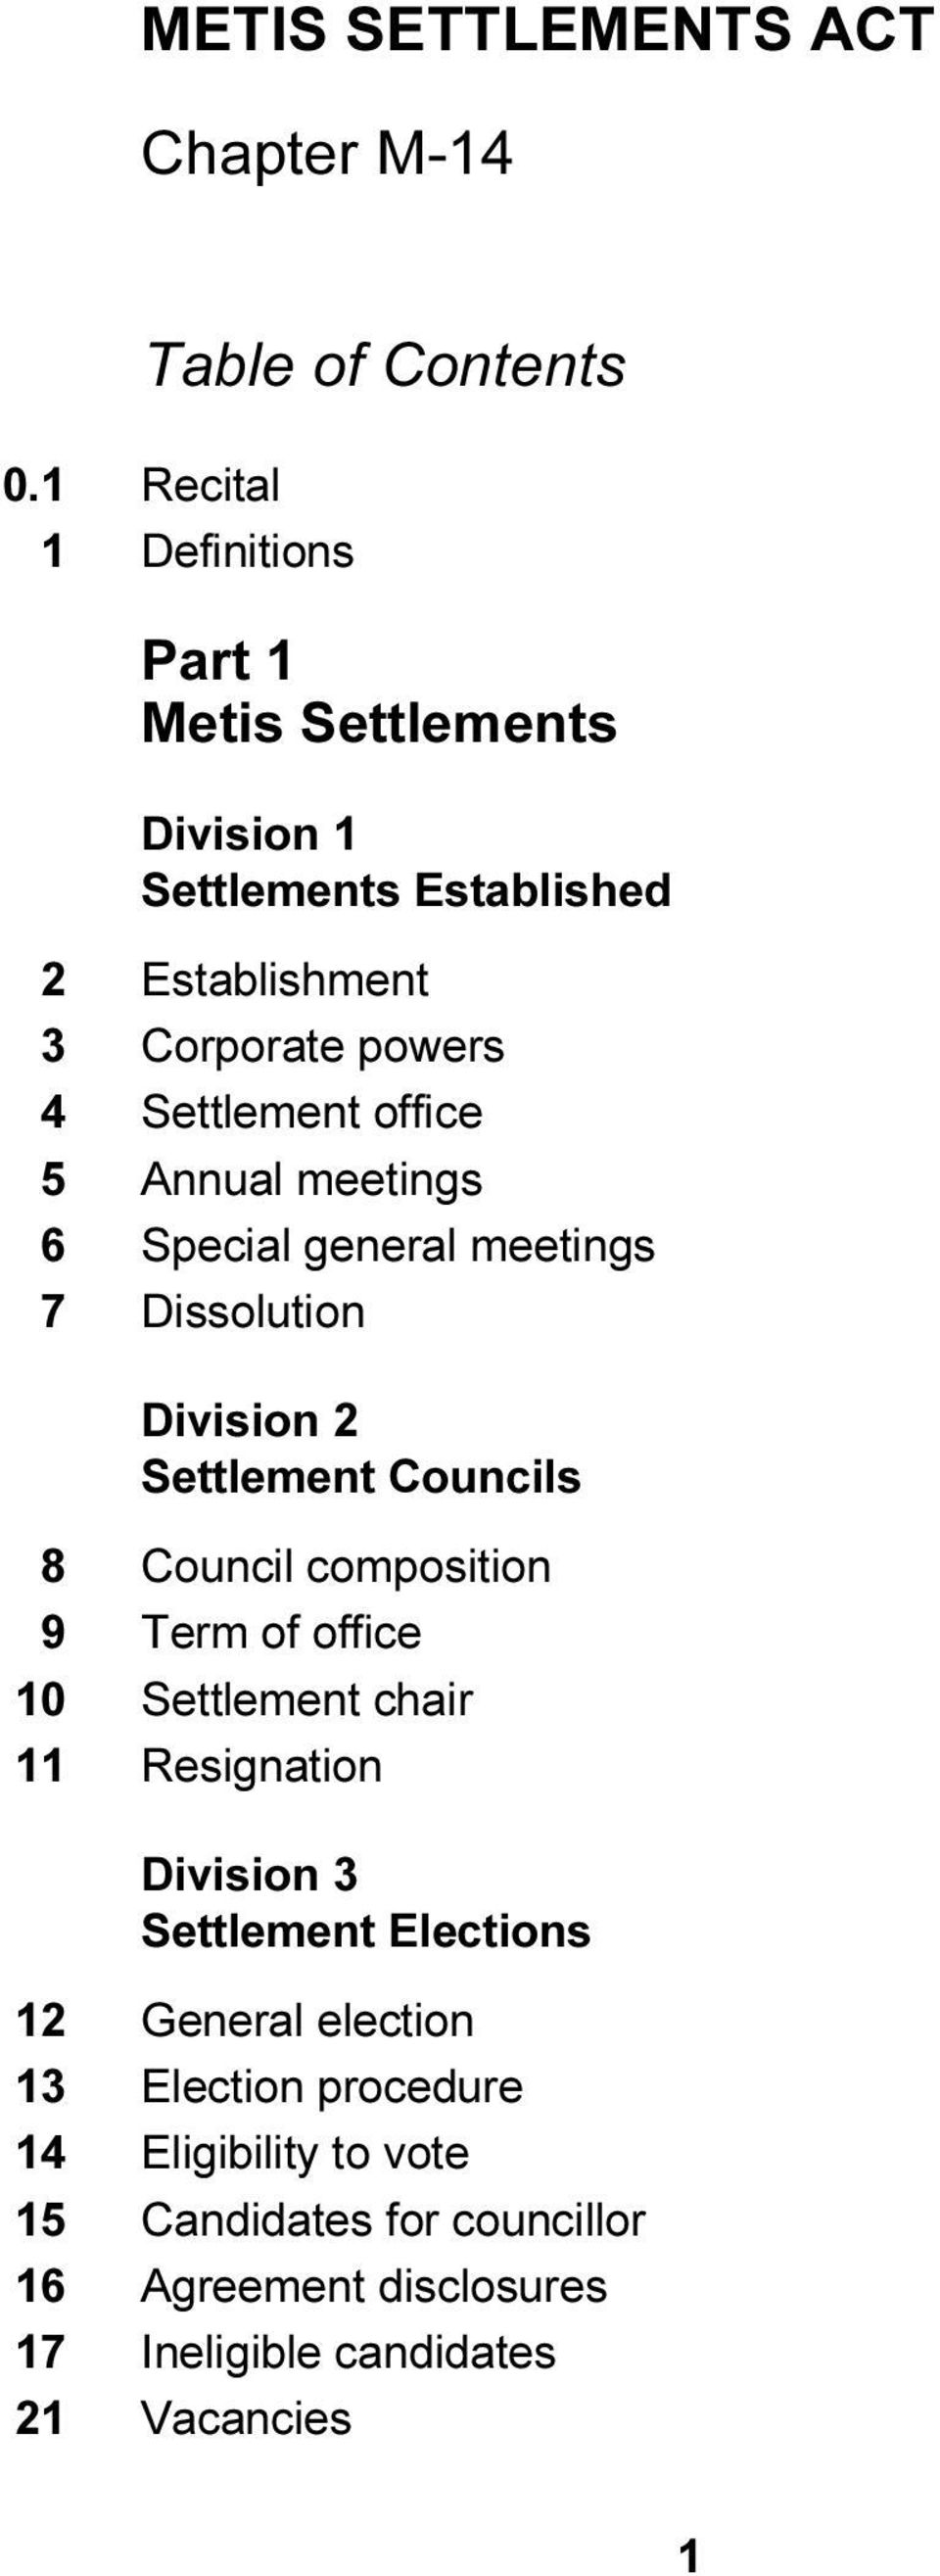 office 5 Annual meetings 6 Special general meetings 7 Dissolution Division 2 Settlement Councils 8 Council composition 9 Term of